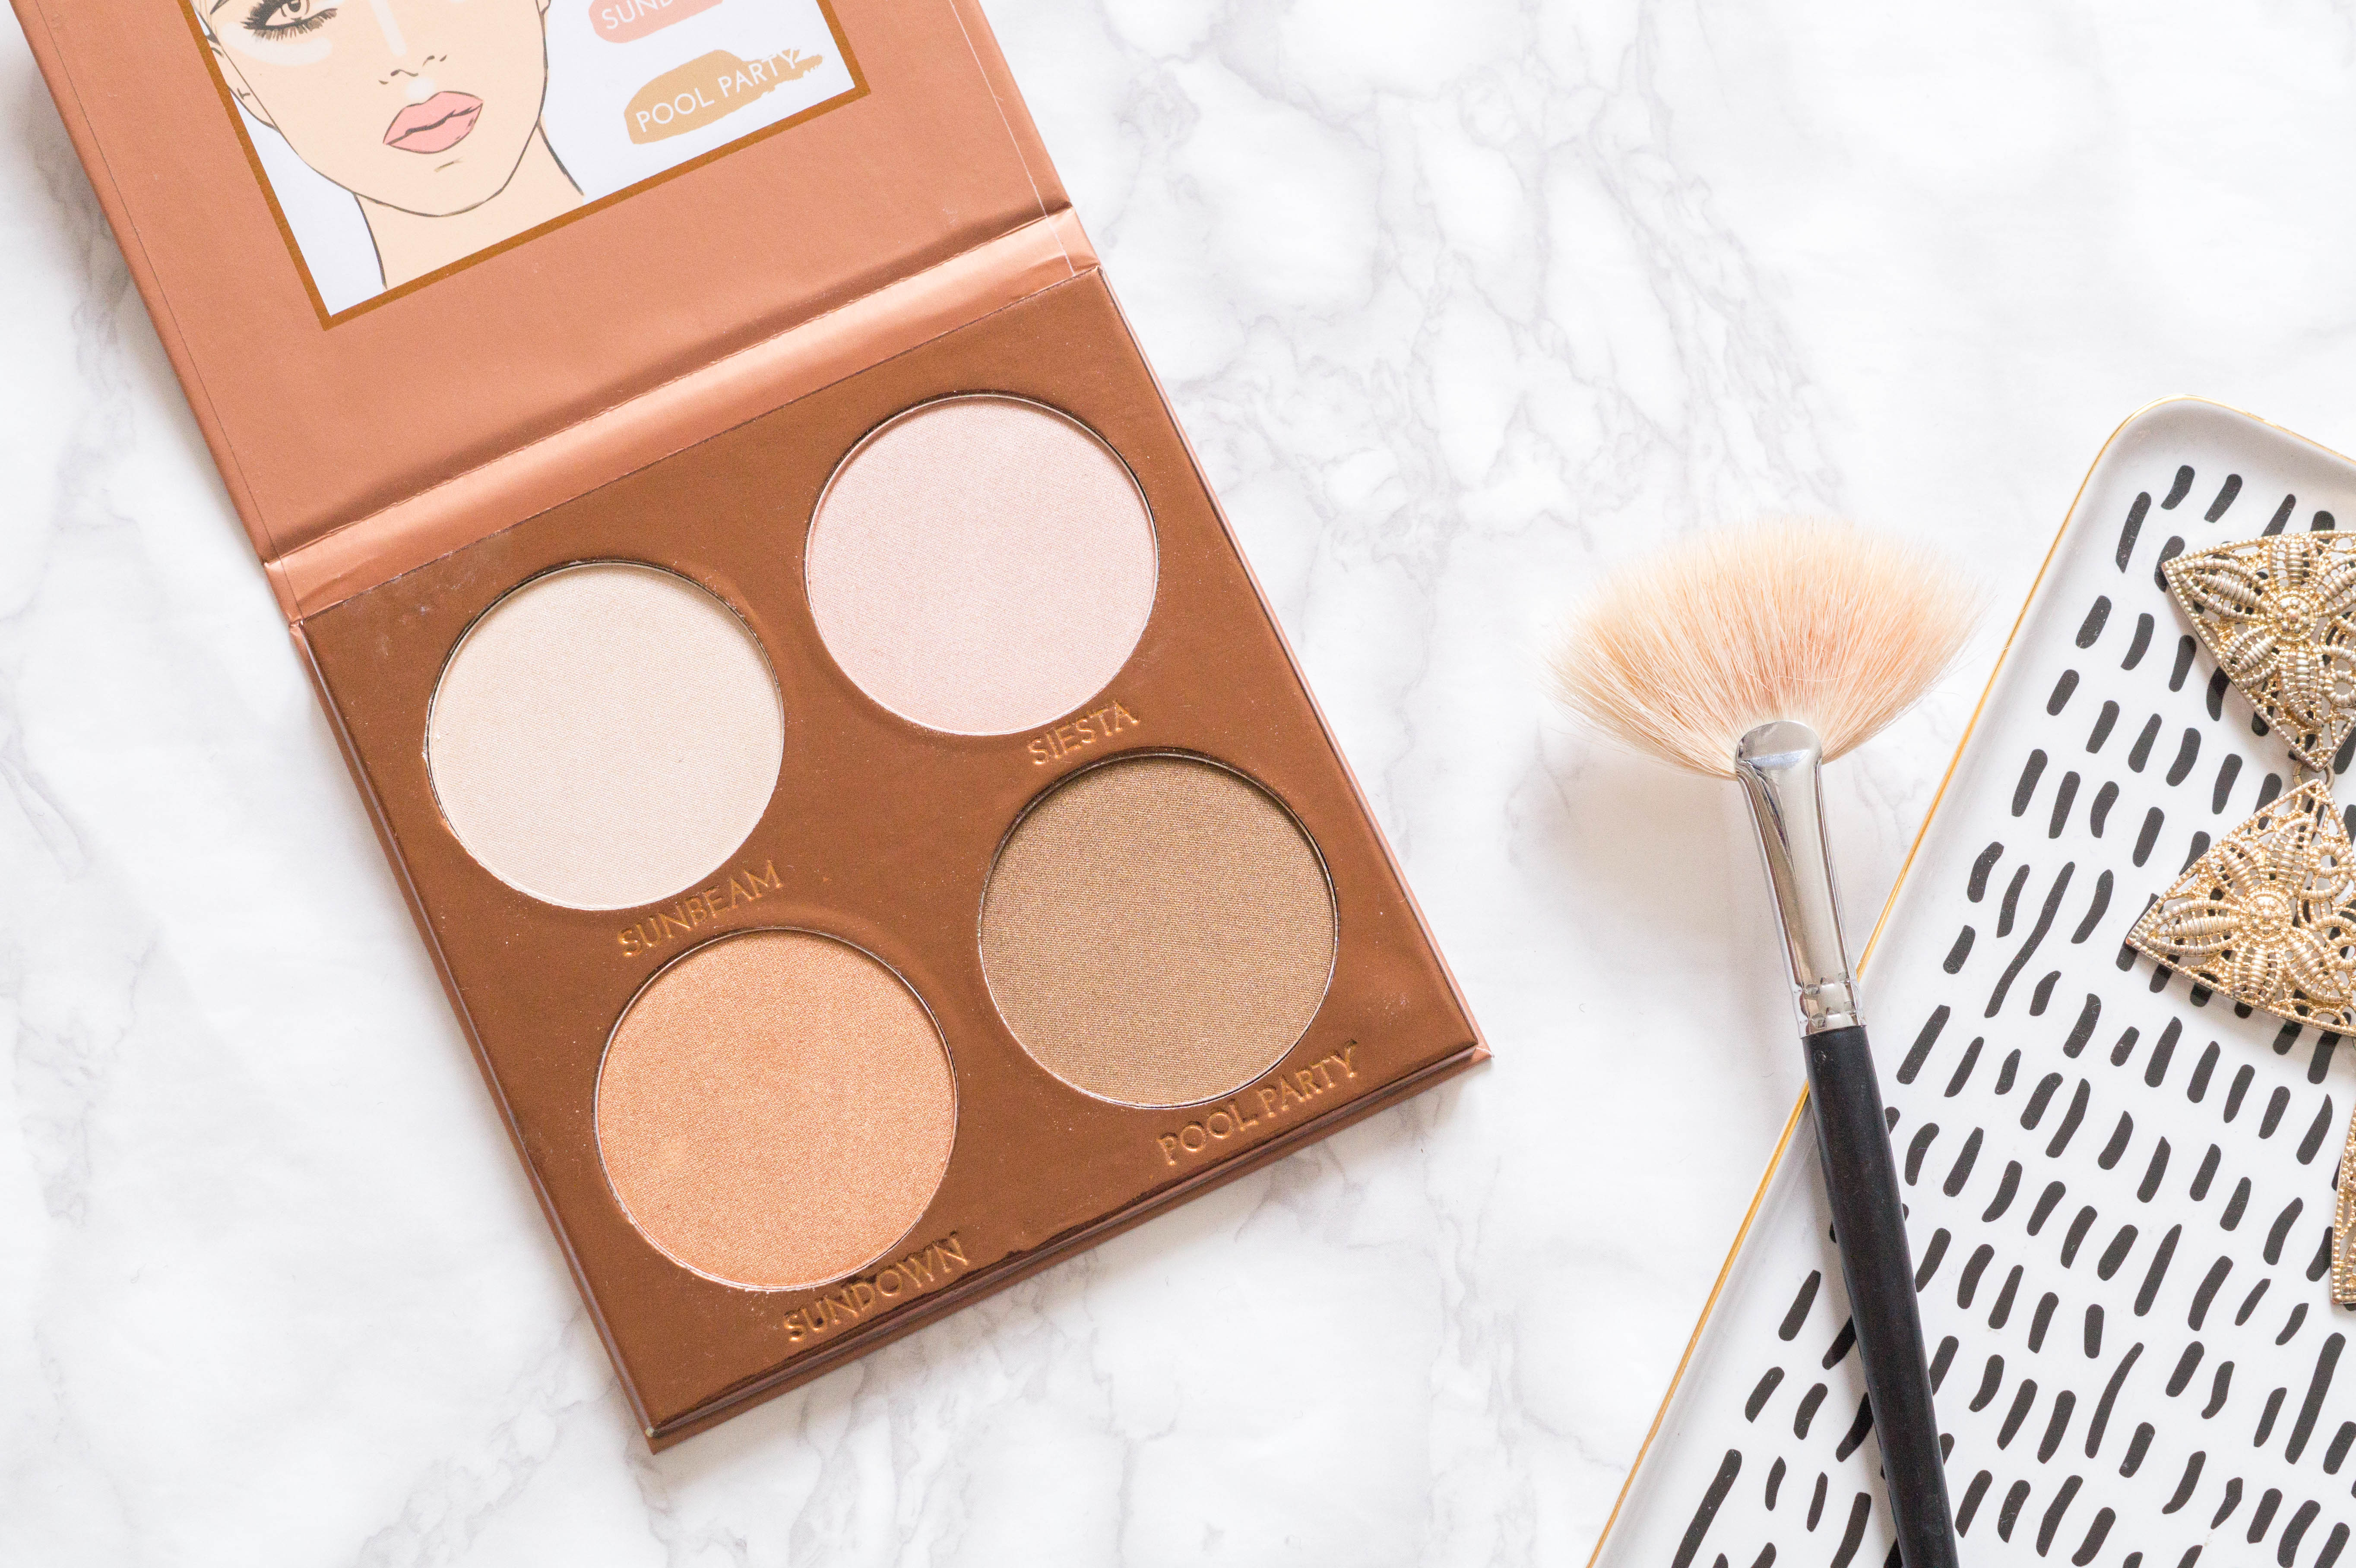 primark glow kit swatches review flatlay beauty blog makeup blogger